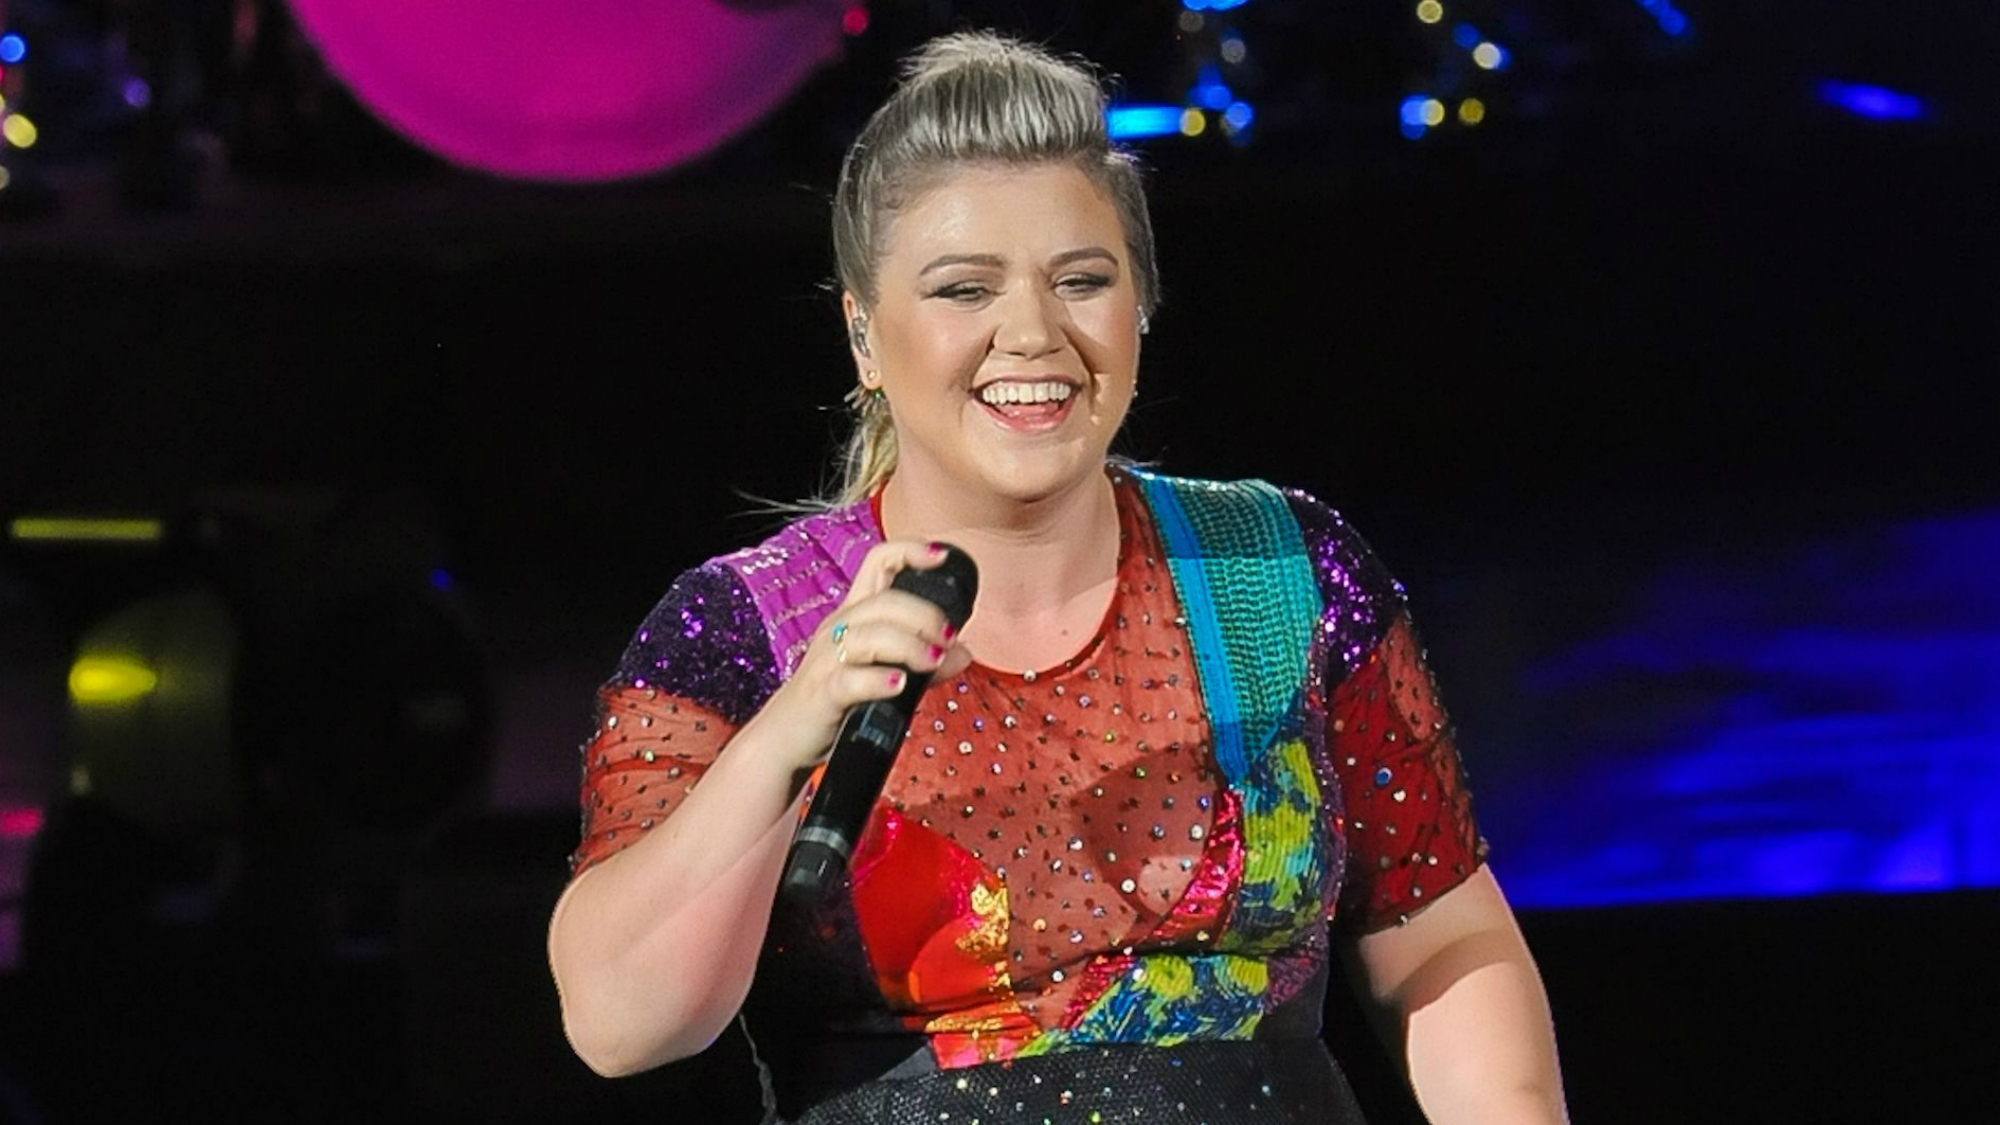 Kelly Clarkson just took on body shaming trolls in the best possible way